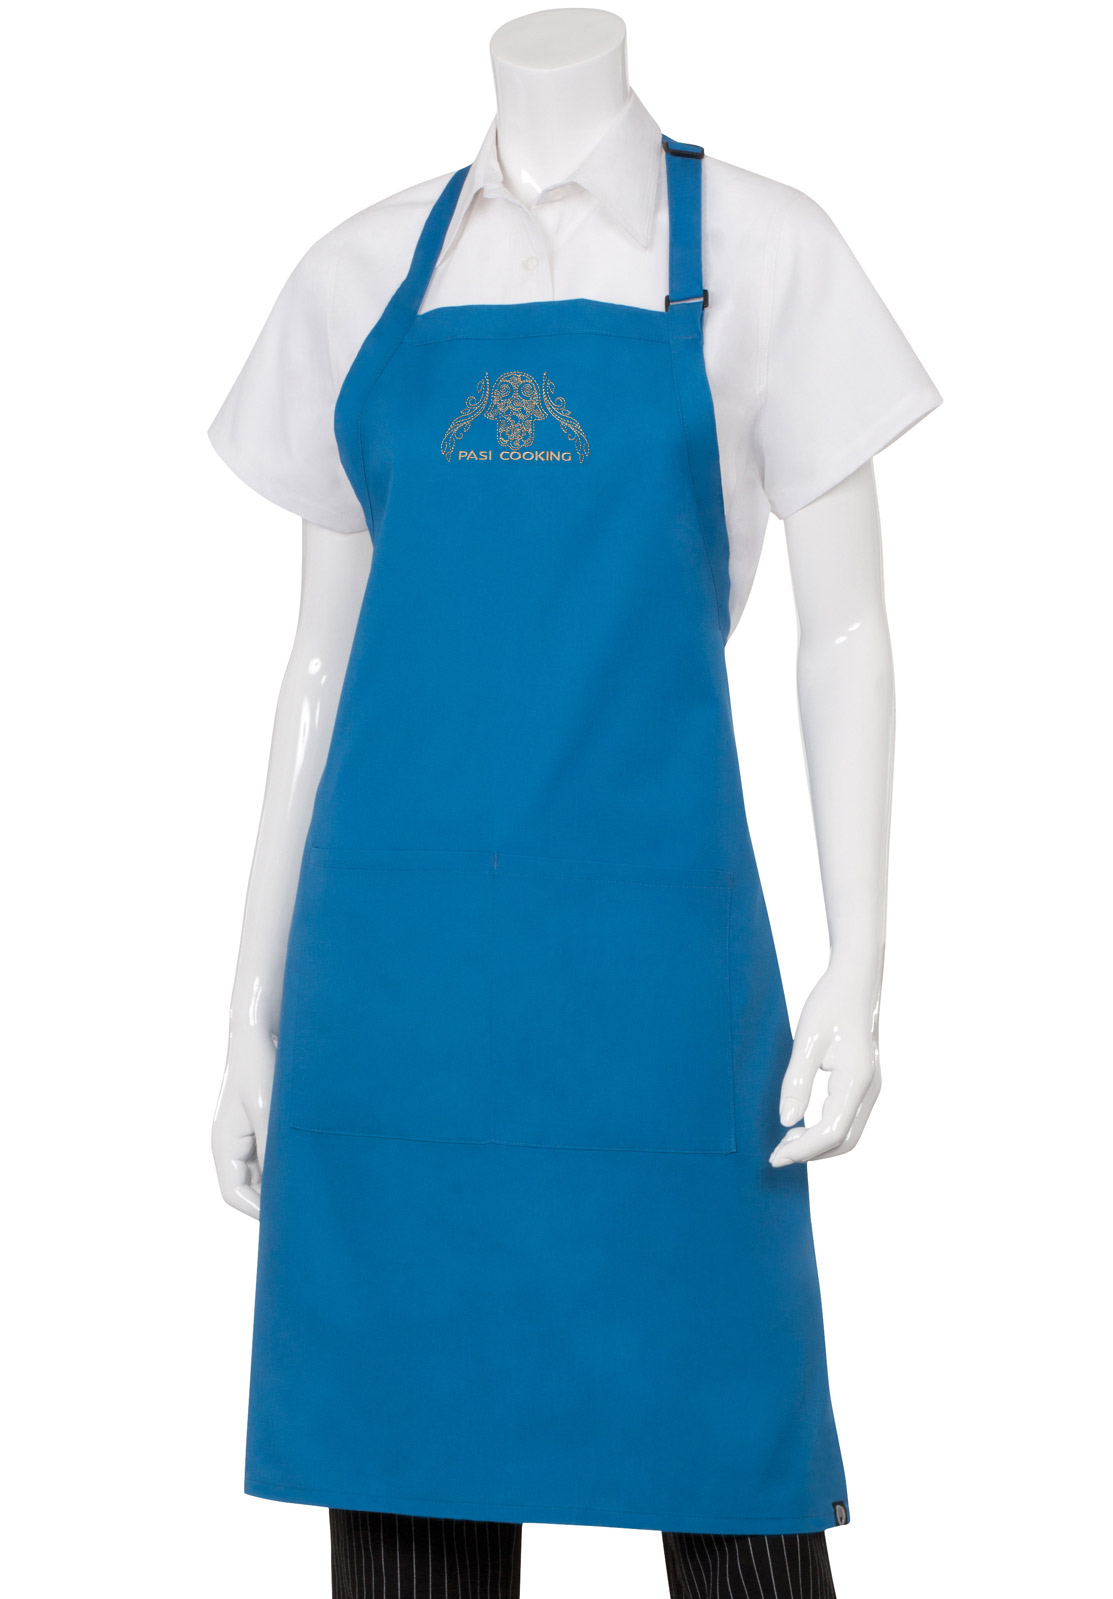 pasi cooking embroidered blue chef 39 s bib apron. Black Bedroom Furniture Sets. Home Design Ideas